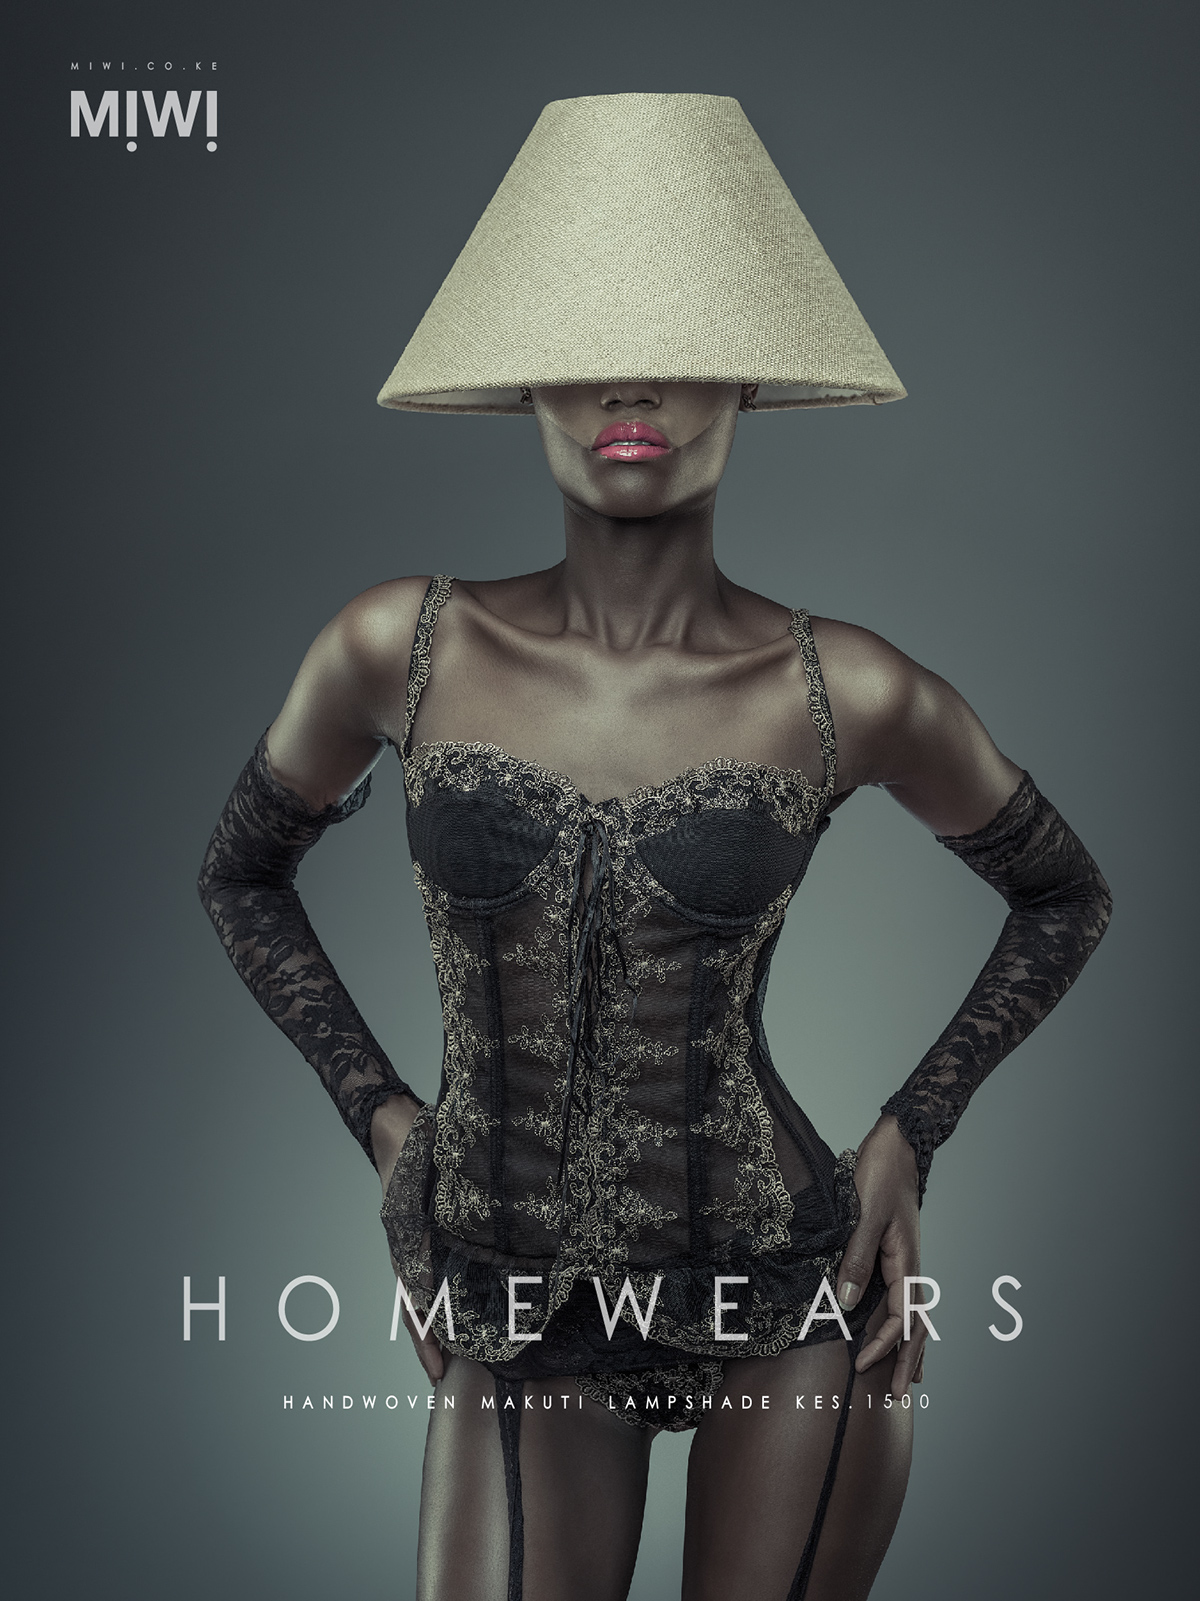 Osborne Macharia, Homewears